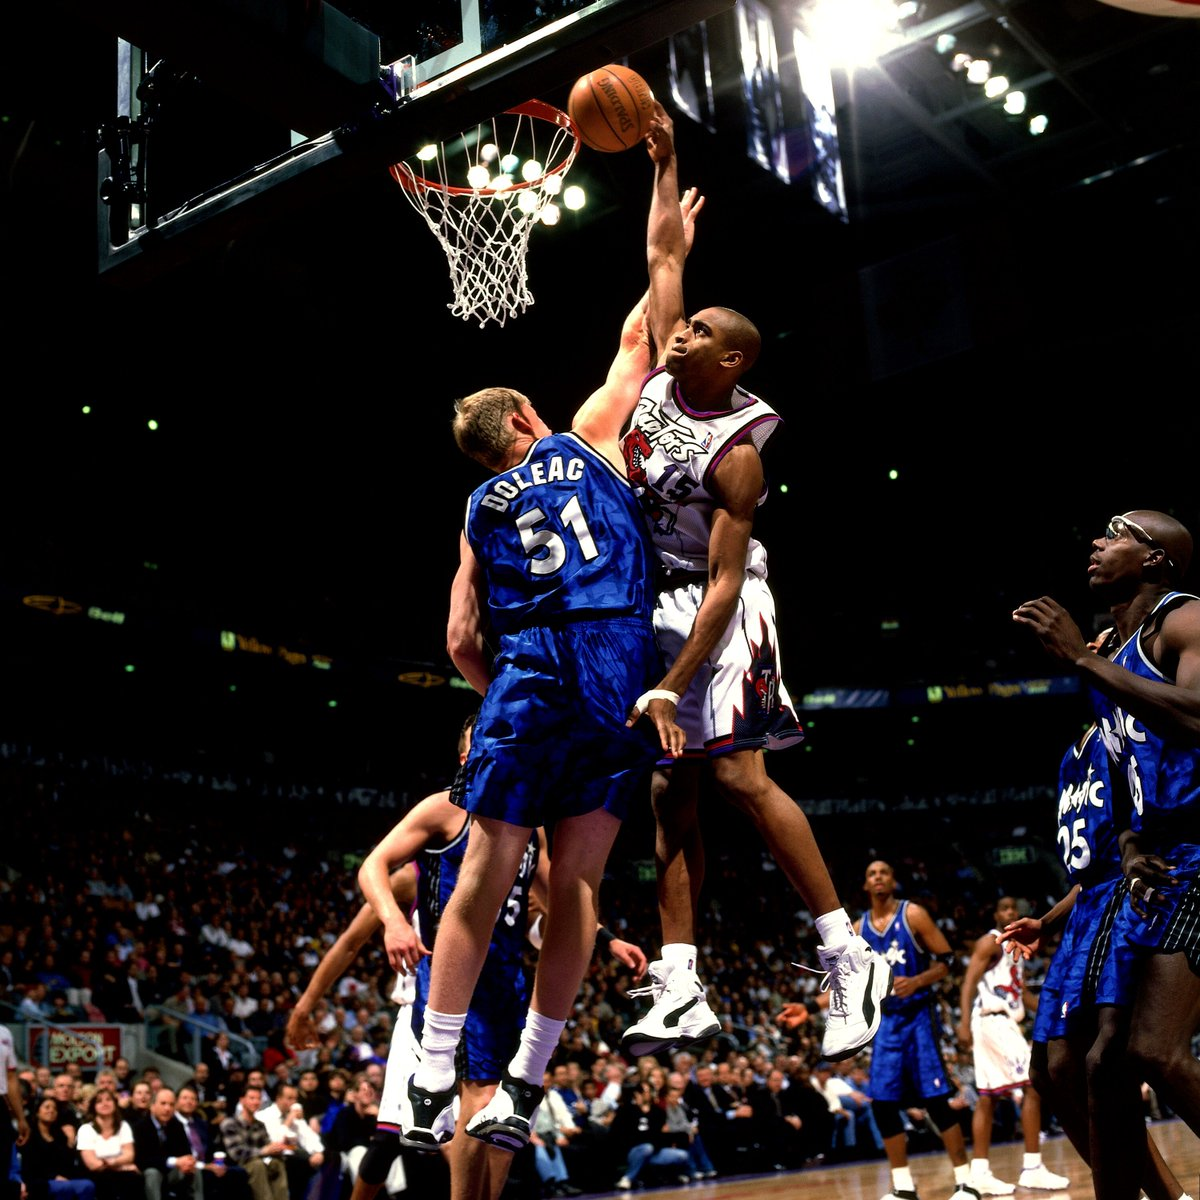 20 years ago today, @mrvincecarter15 threw down in the Puma Vinsanity.